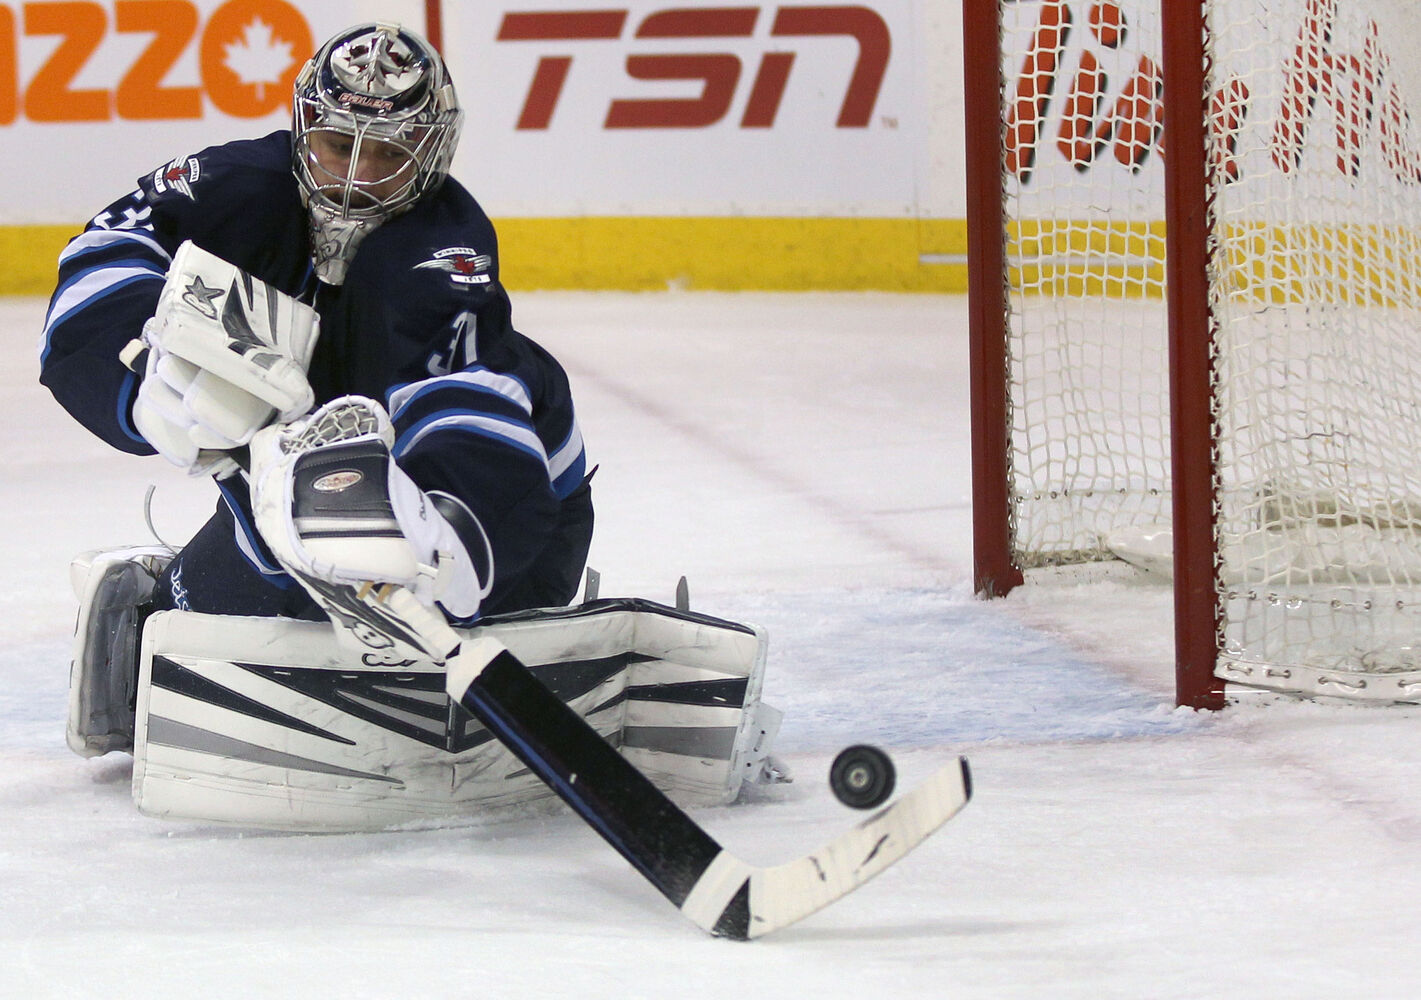 Winnipeg Jets' Ondrej Pavelec makes a save during Friday's game against the Vancouver Canucks in Winnipeg.